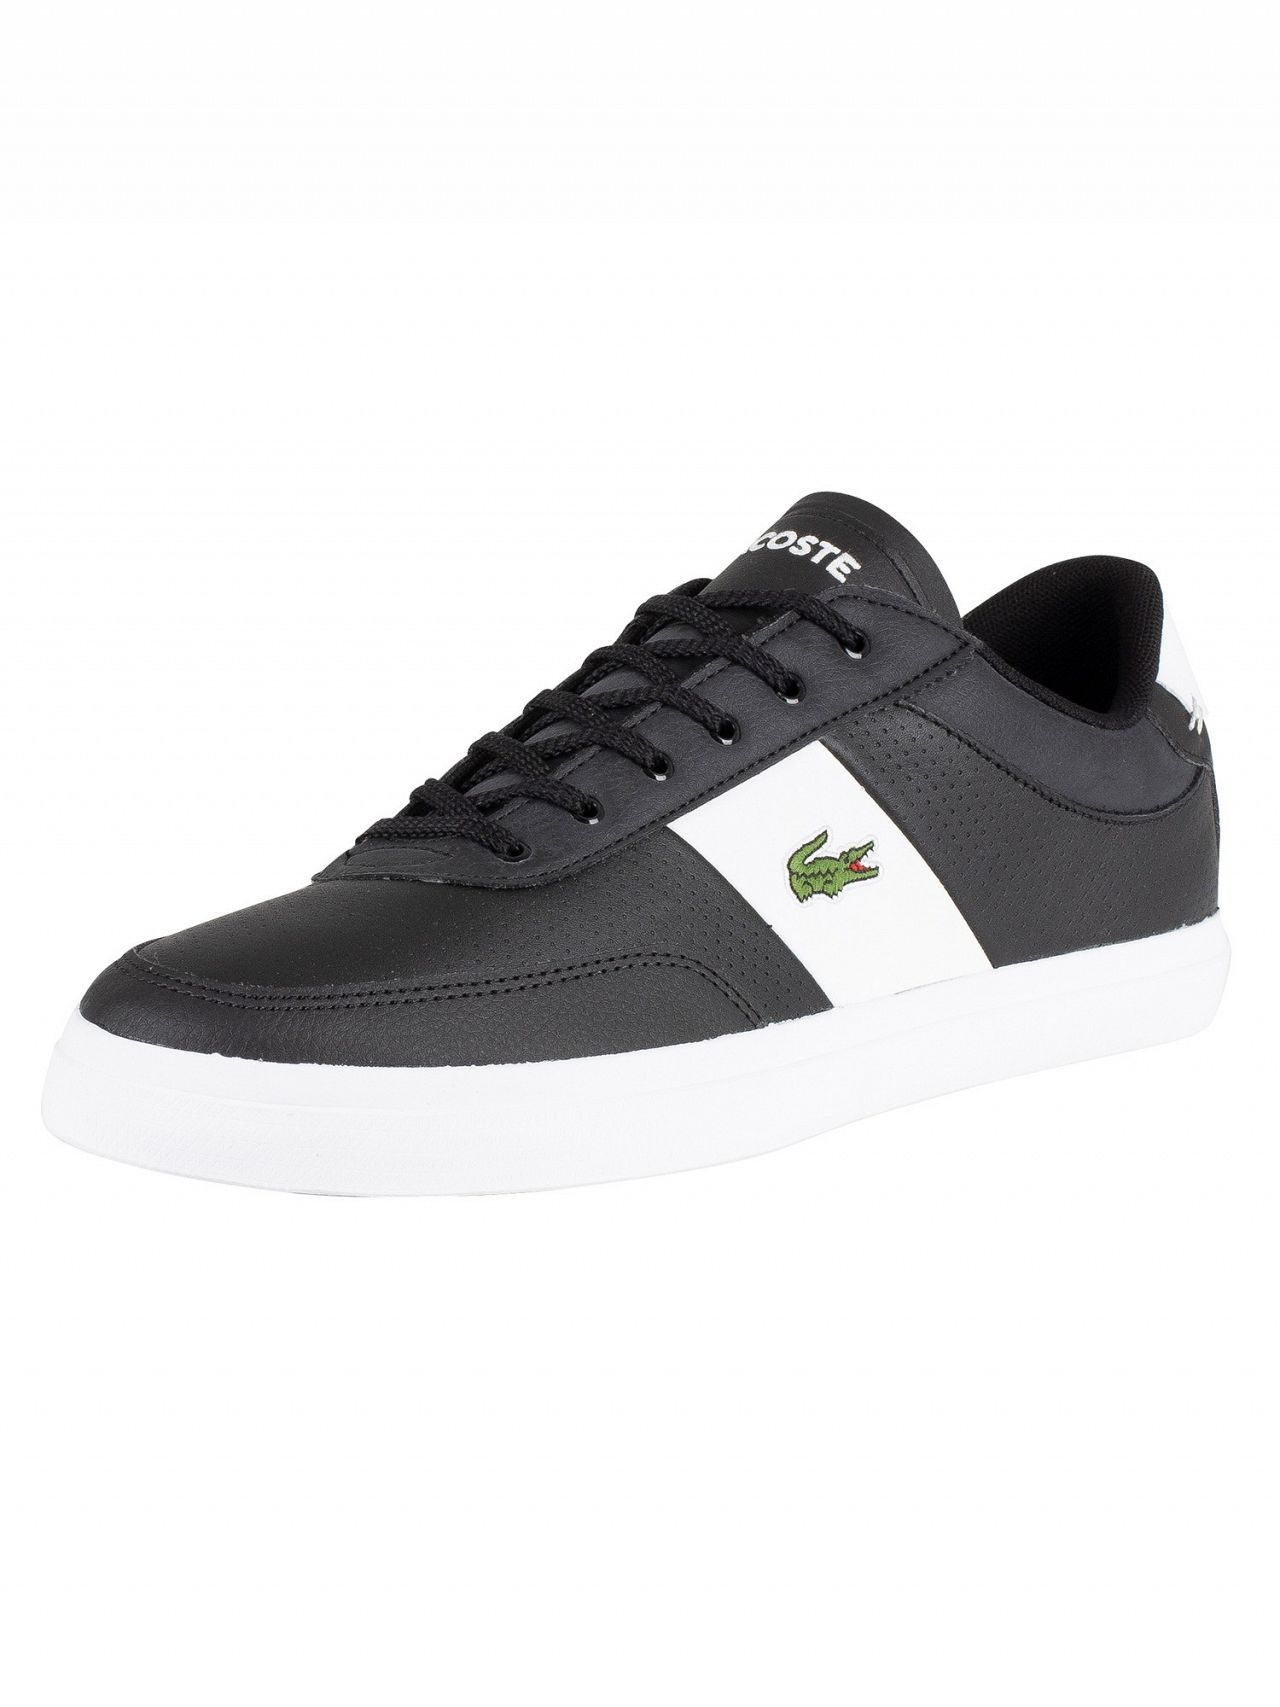 f0495abcb Lacoste Black White Court-Master 119 2 Leather Trainers